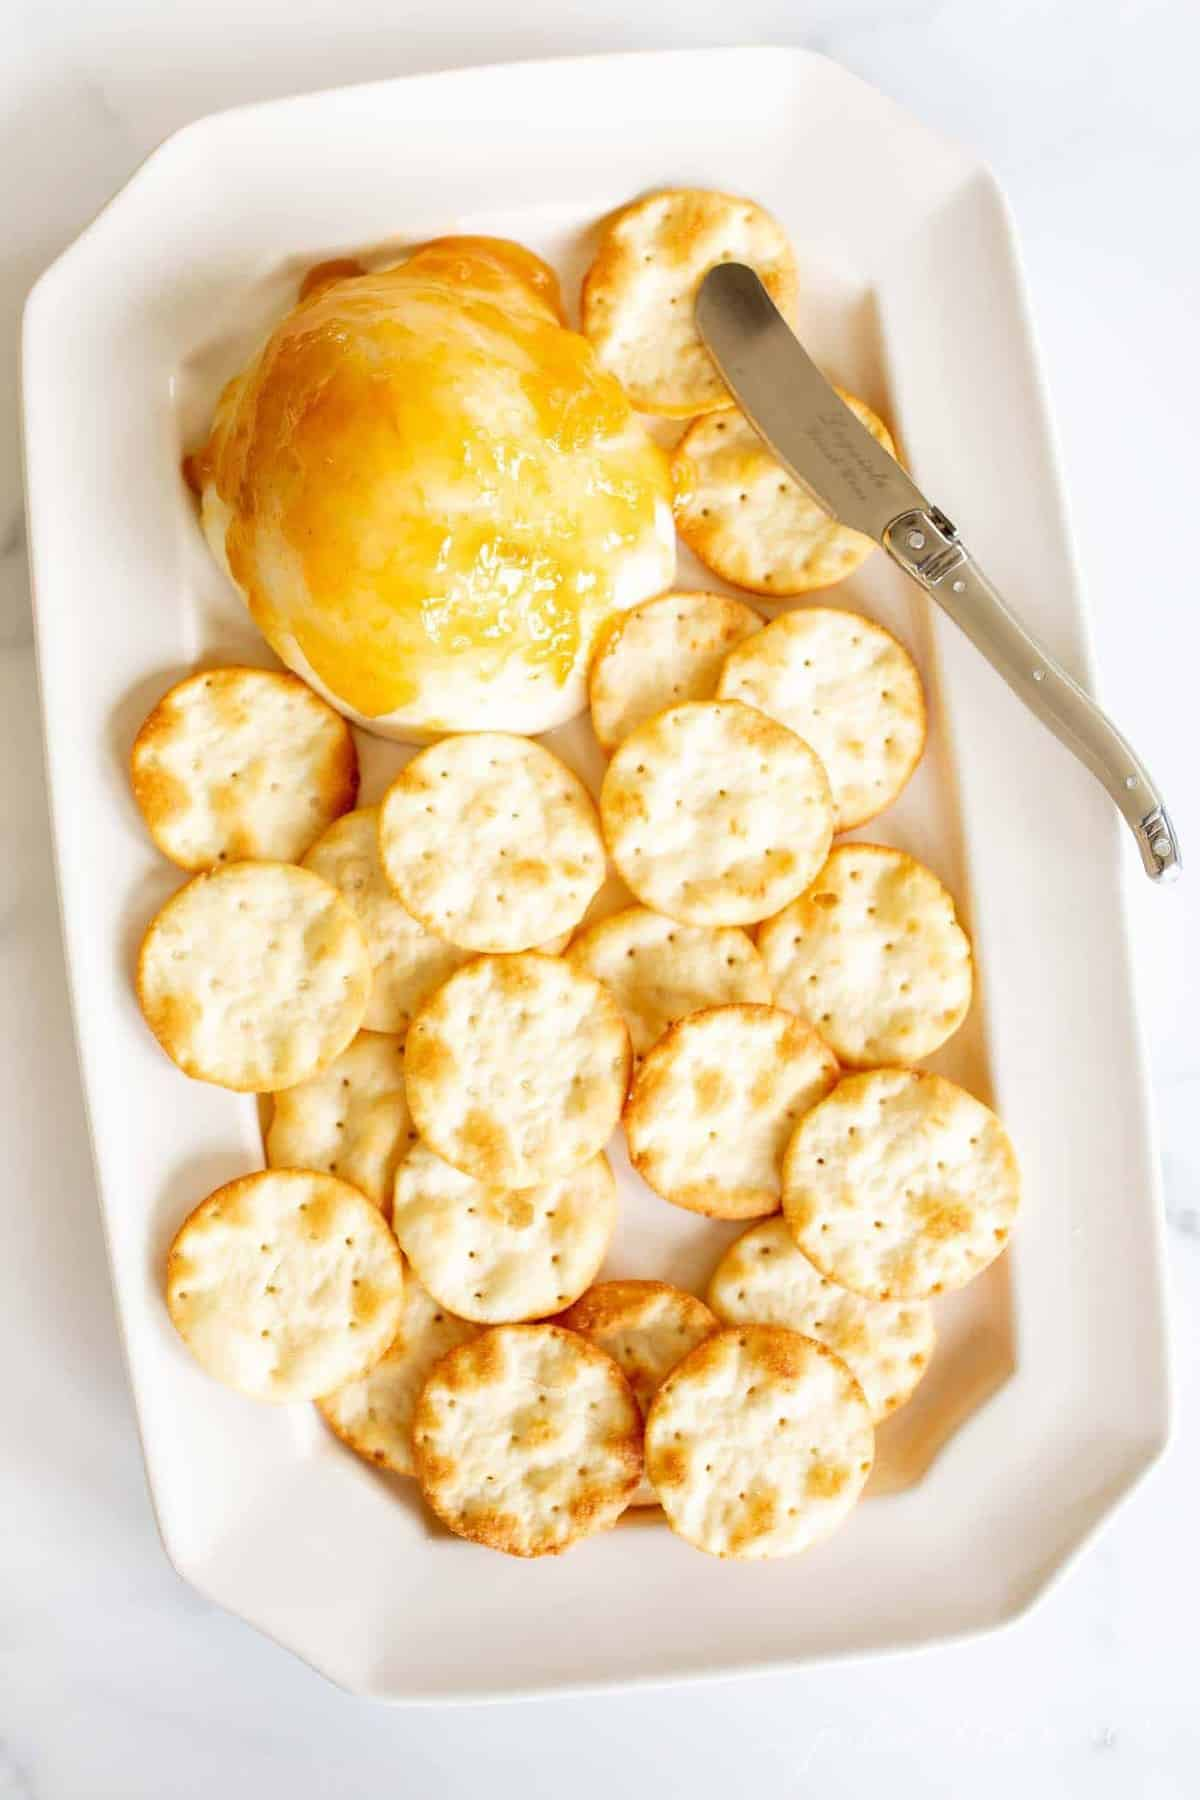 A white platter filled with crackers and a grilled mozzarella appetizer covered in peach preserves.